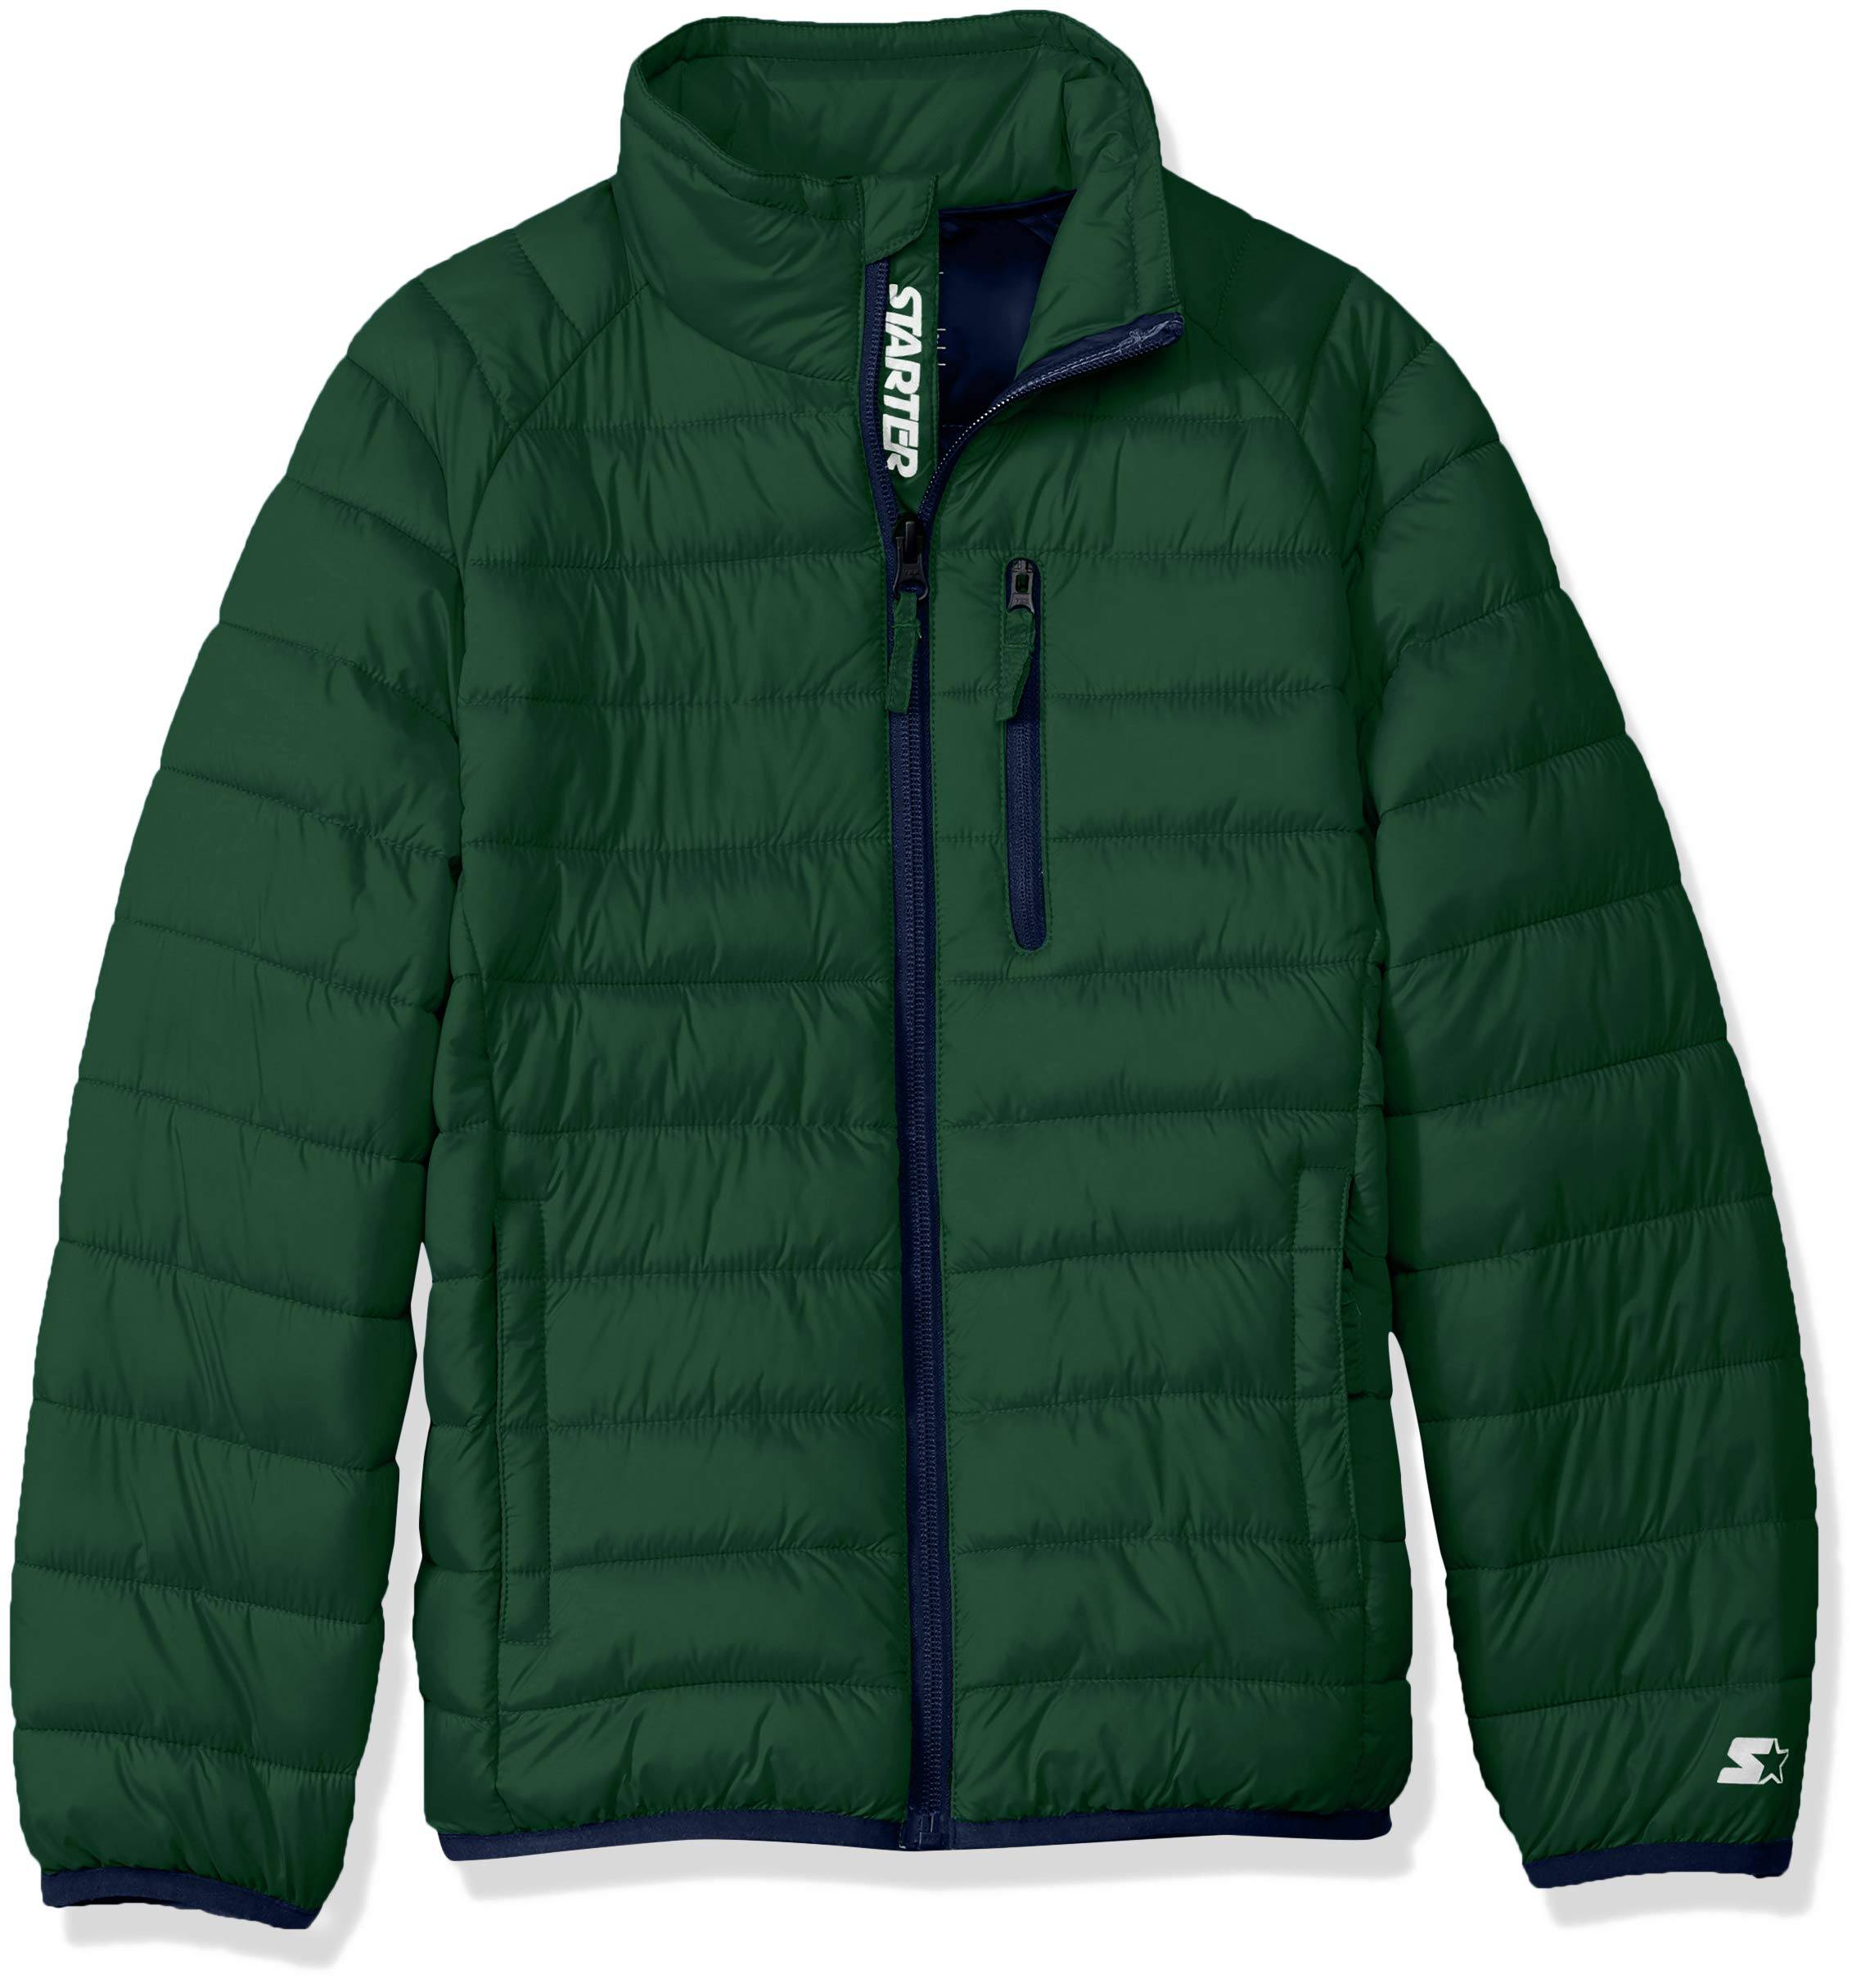 Starter Boys' Packable Puffer Jacket, Amazon Exclusive, Team Outfield Green, XS